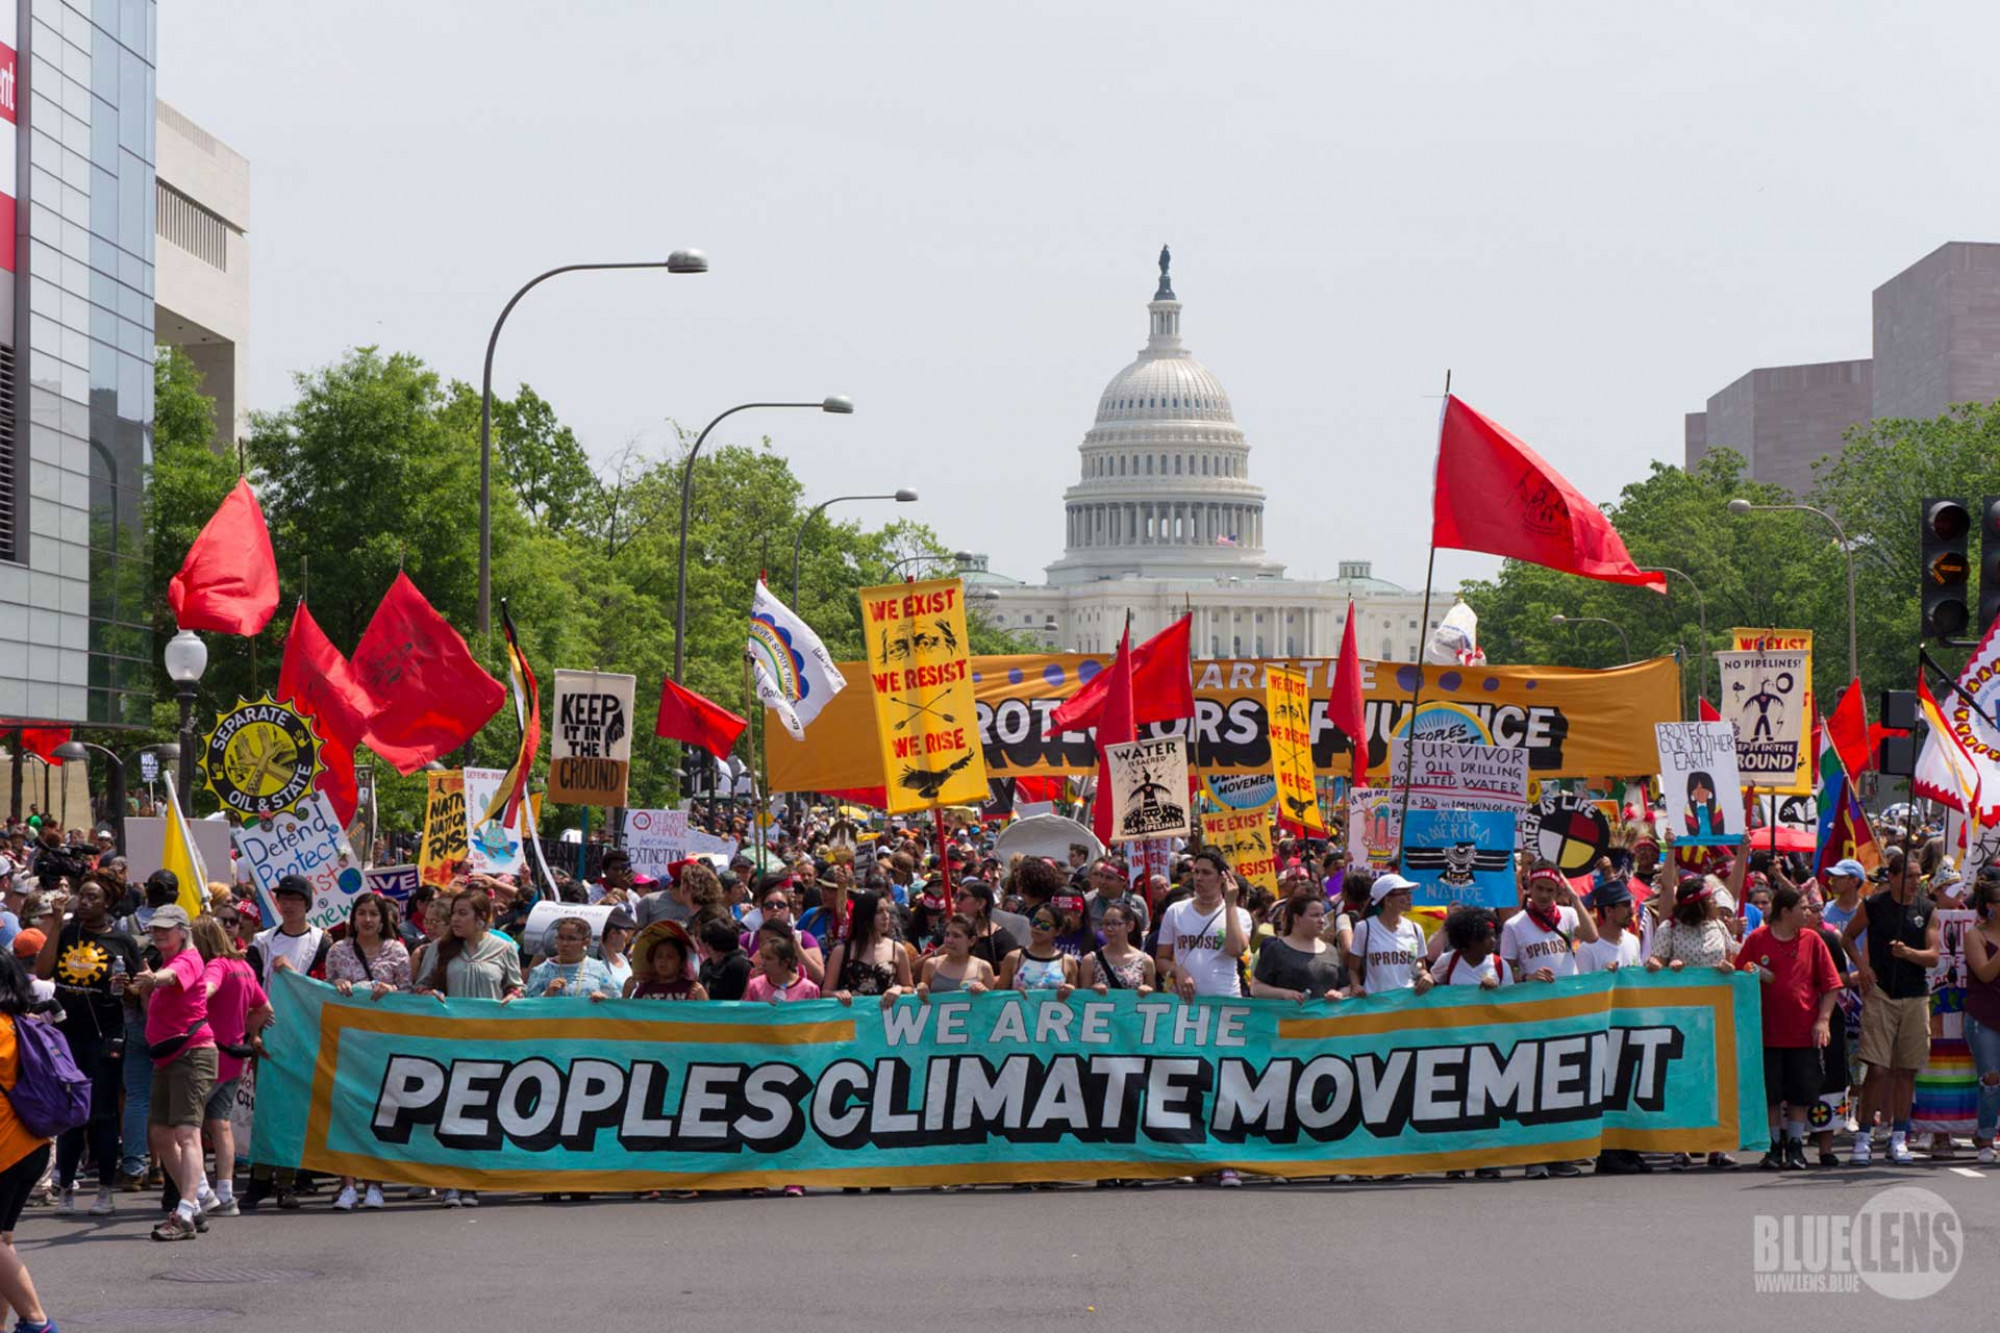 People's Climate March, Washington DC, March 2017